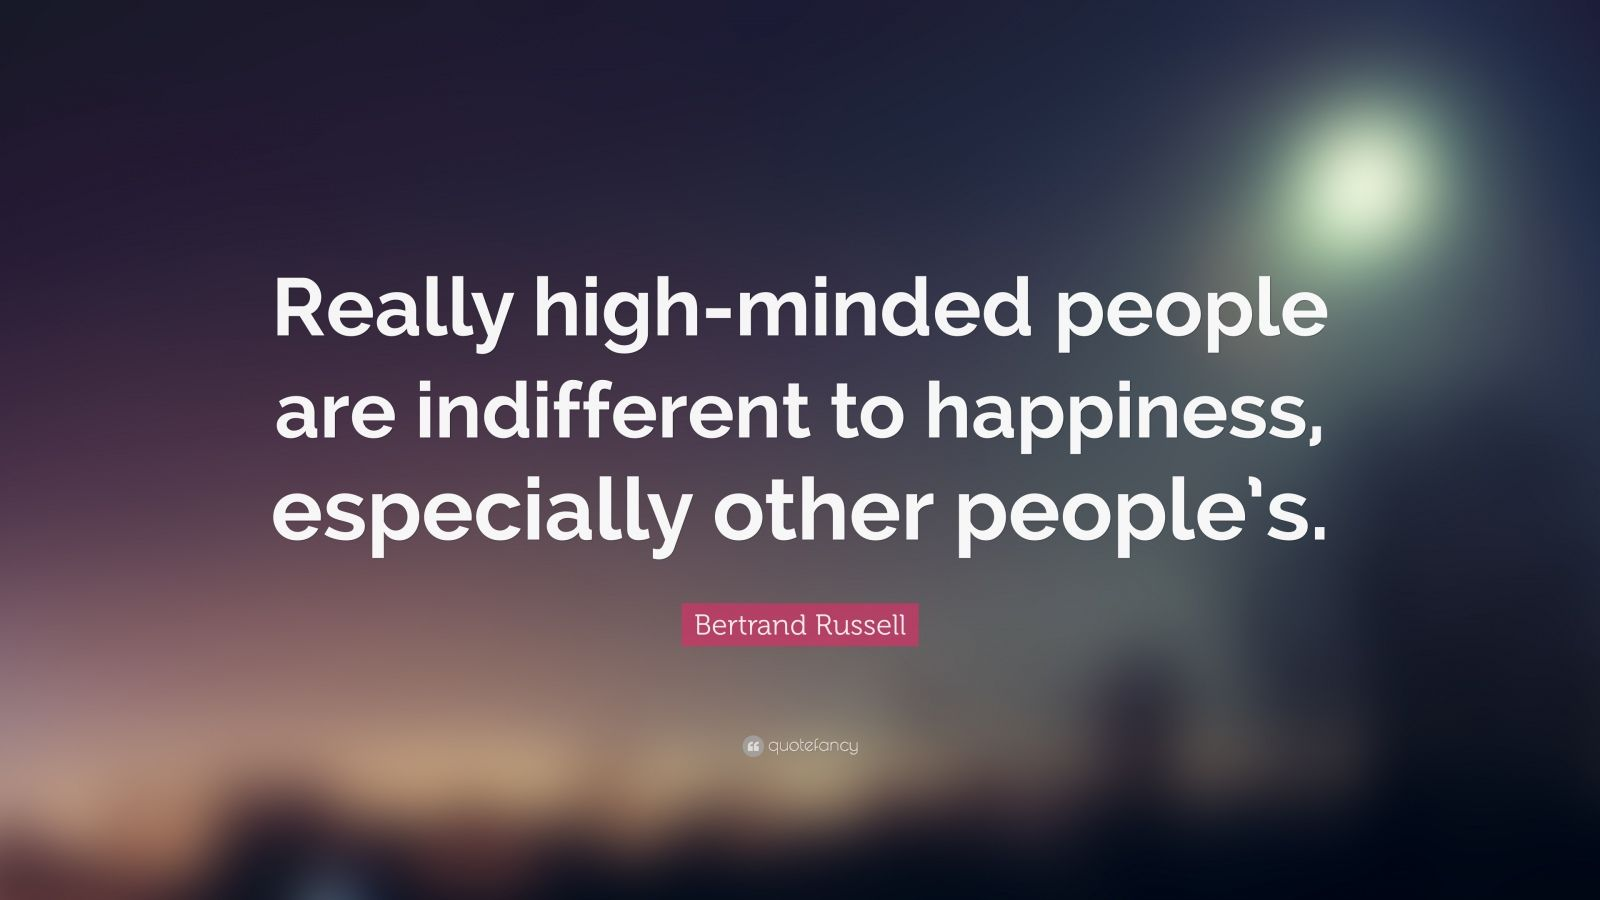 """Bertrand Russell Quote: """"Really high-minded people are indifferent to happiness, especially other people's."""""""